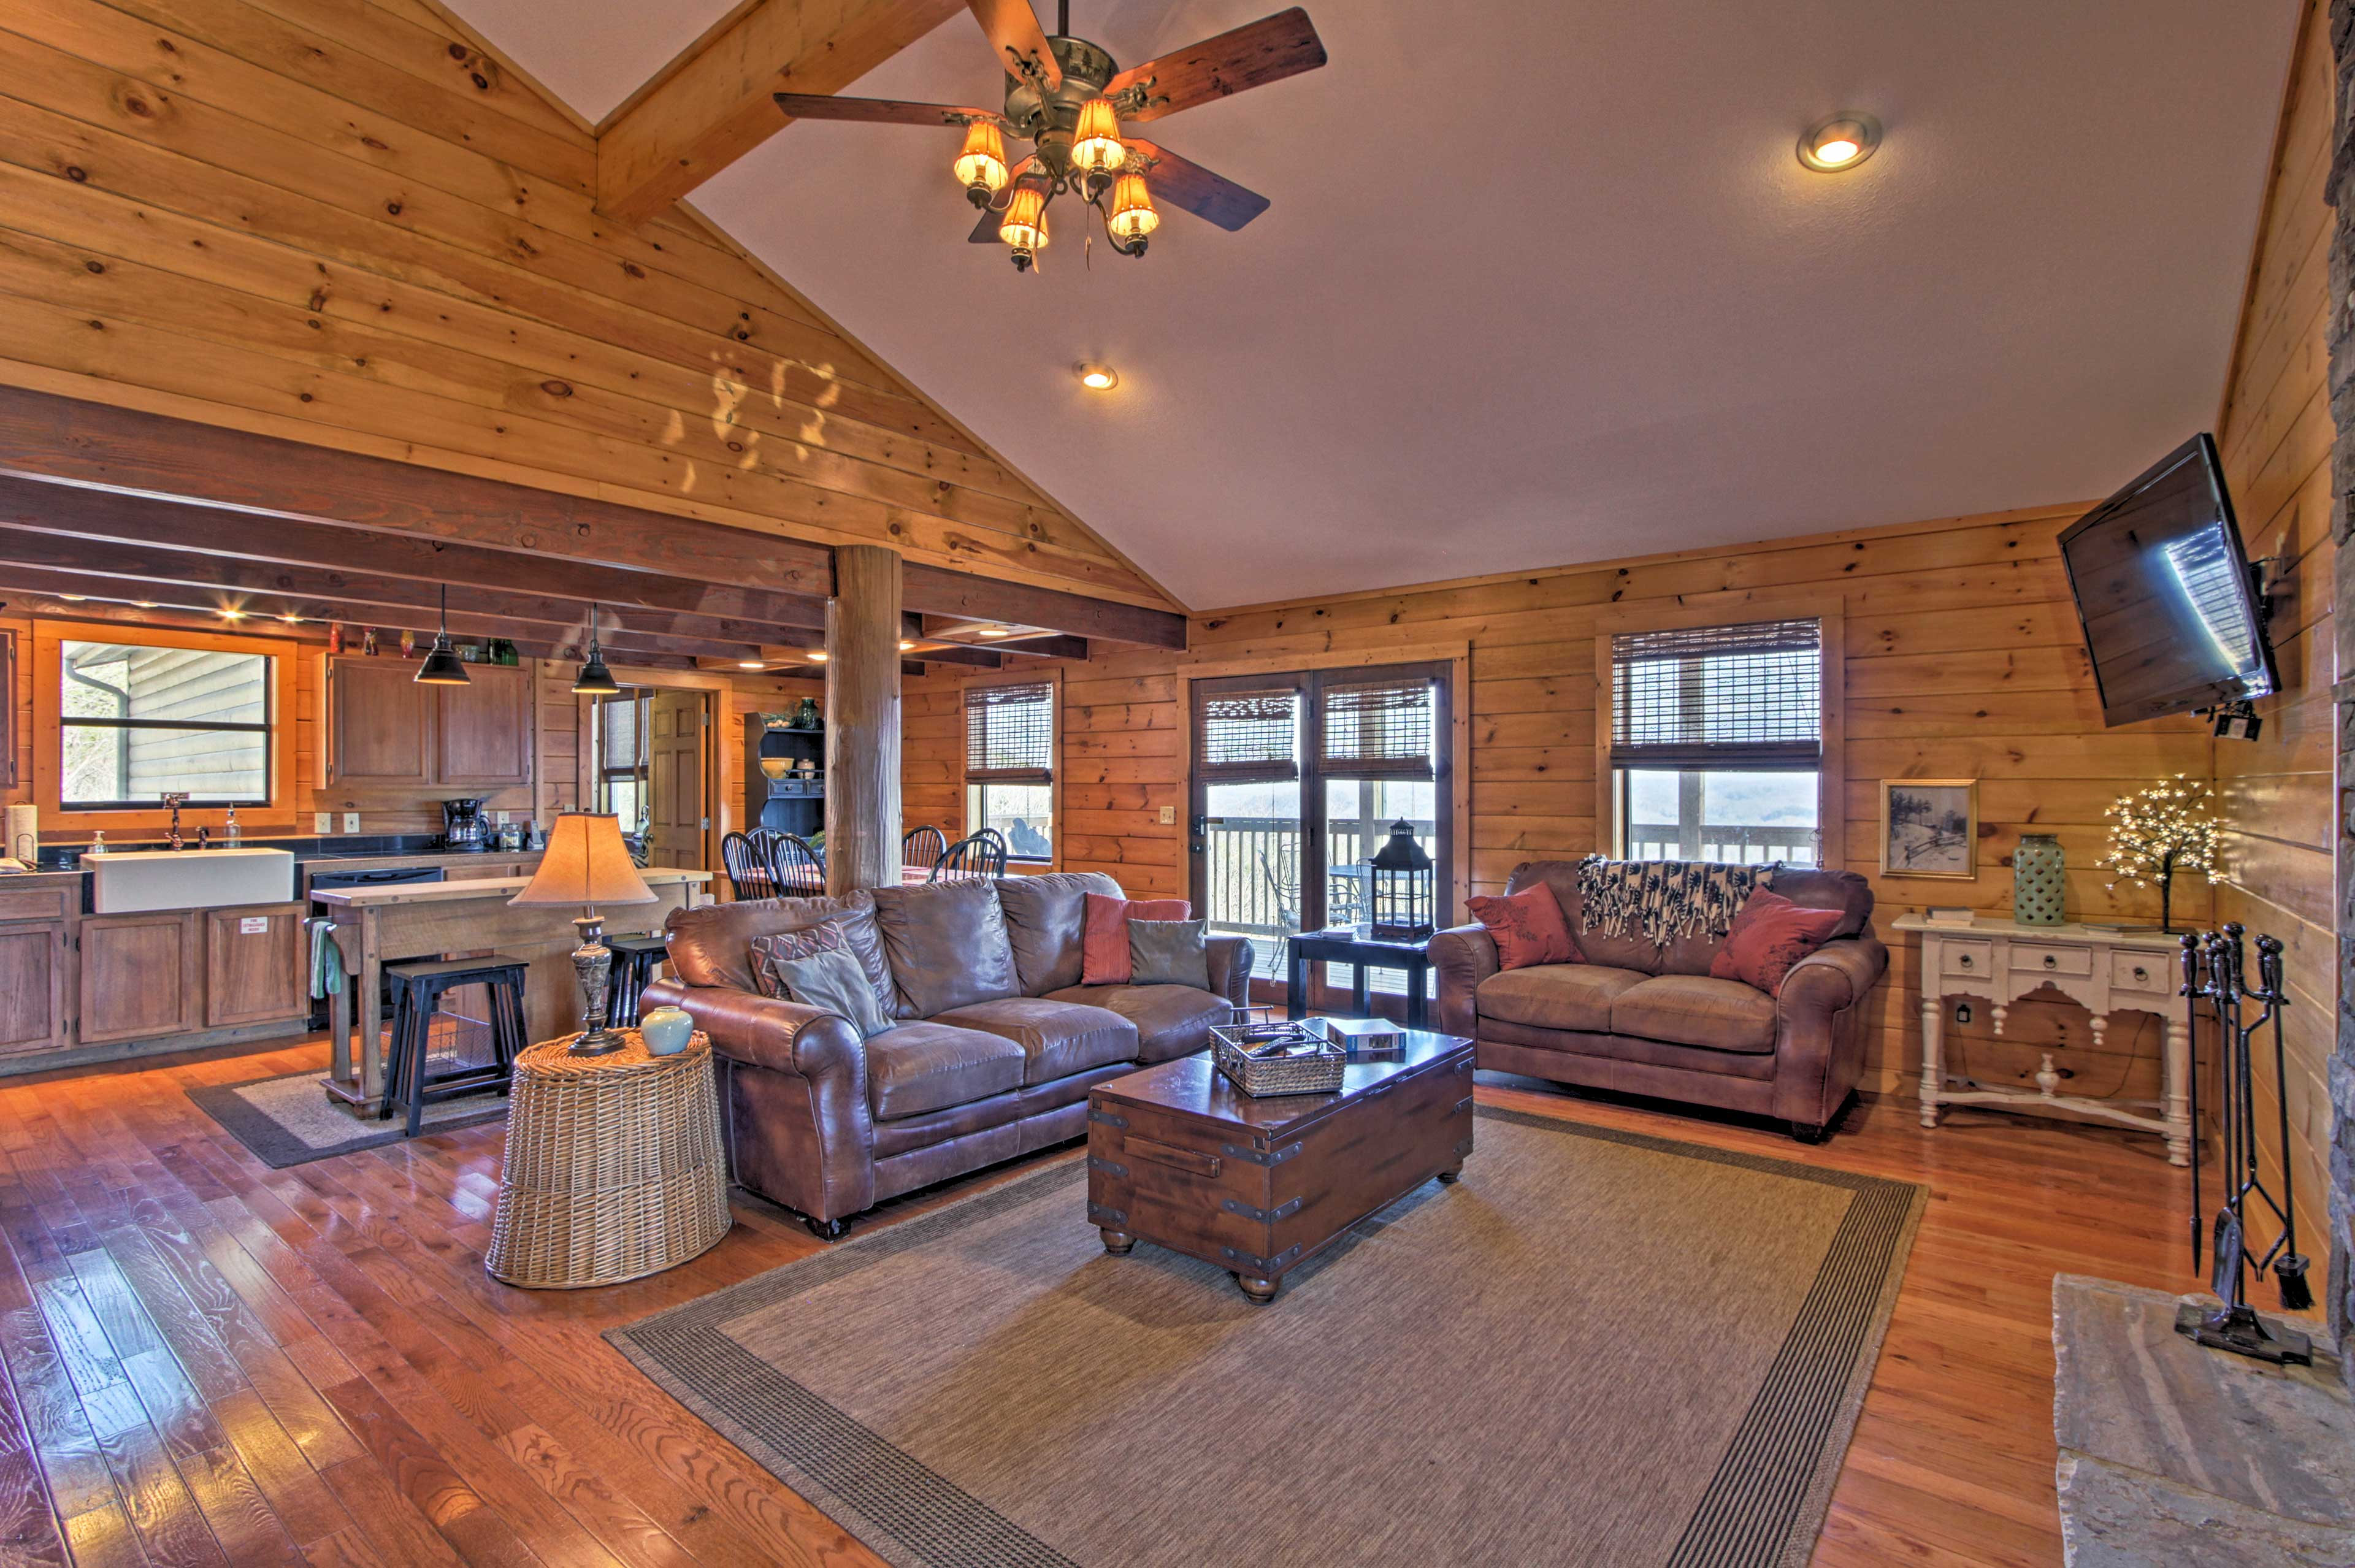 Rustic furnishings and wood accents create a cozy cabin feel.